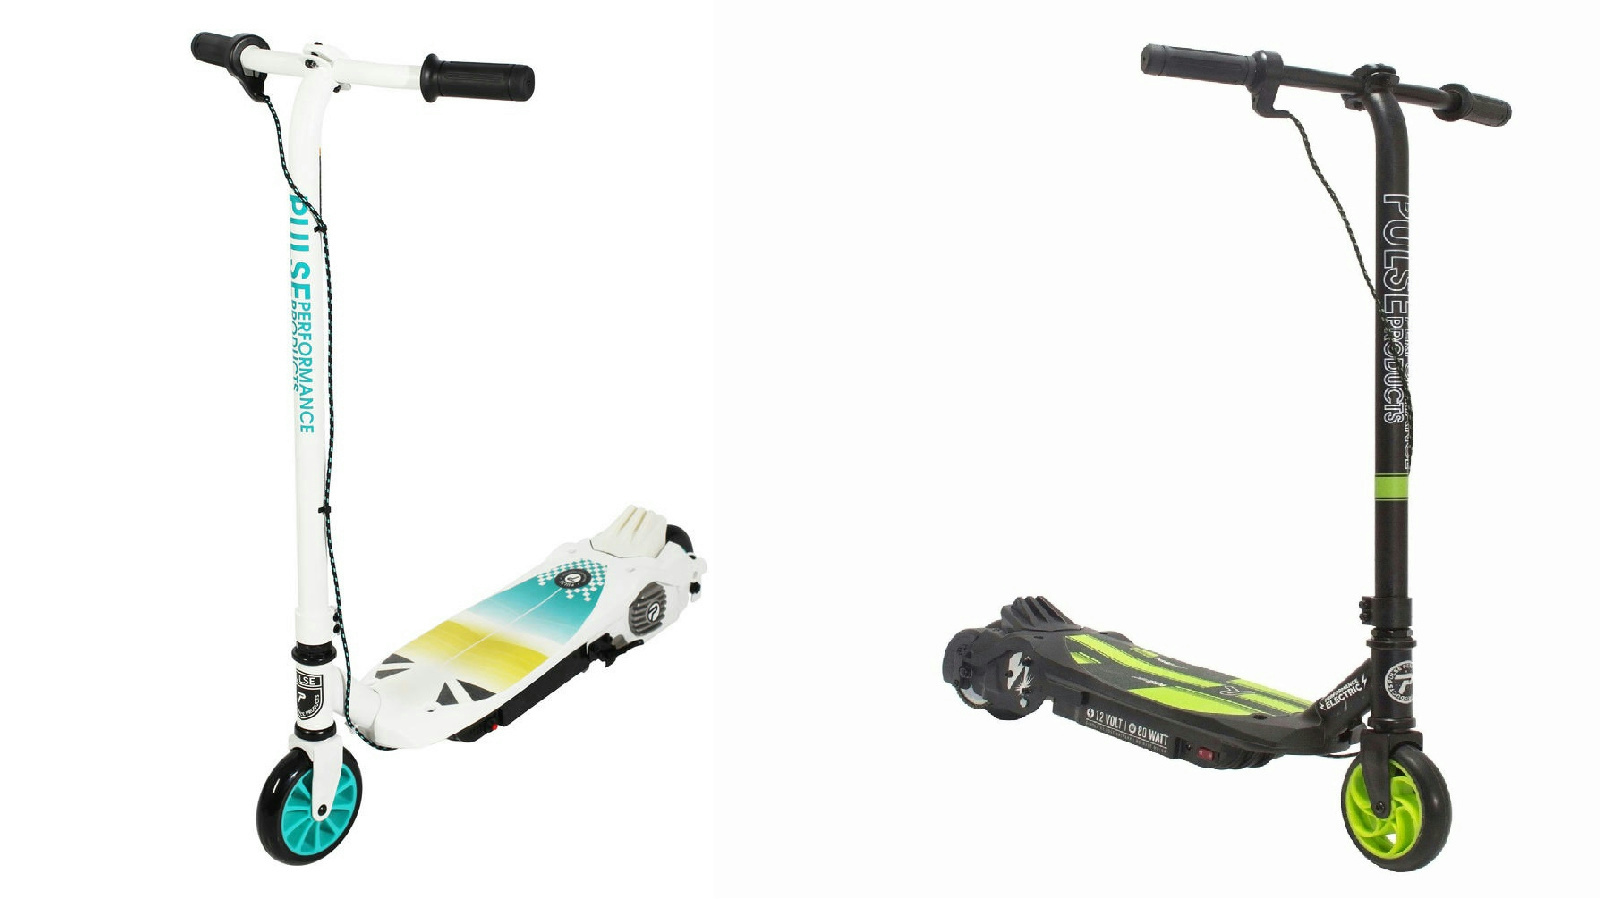 Lot Of 2 Pulse Performance Electric Scooters